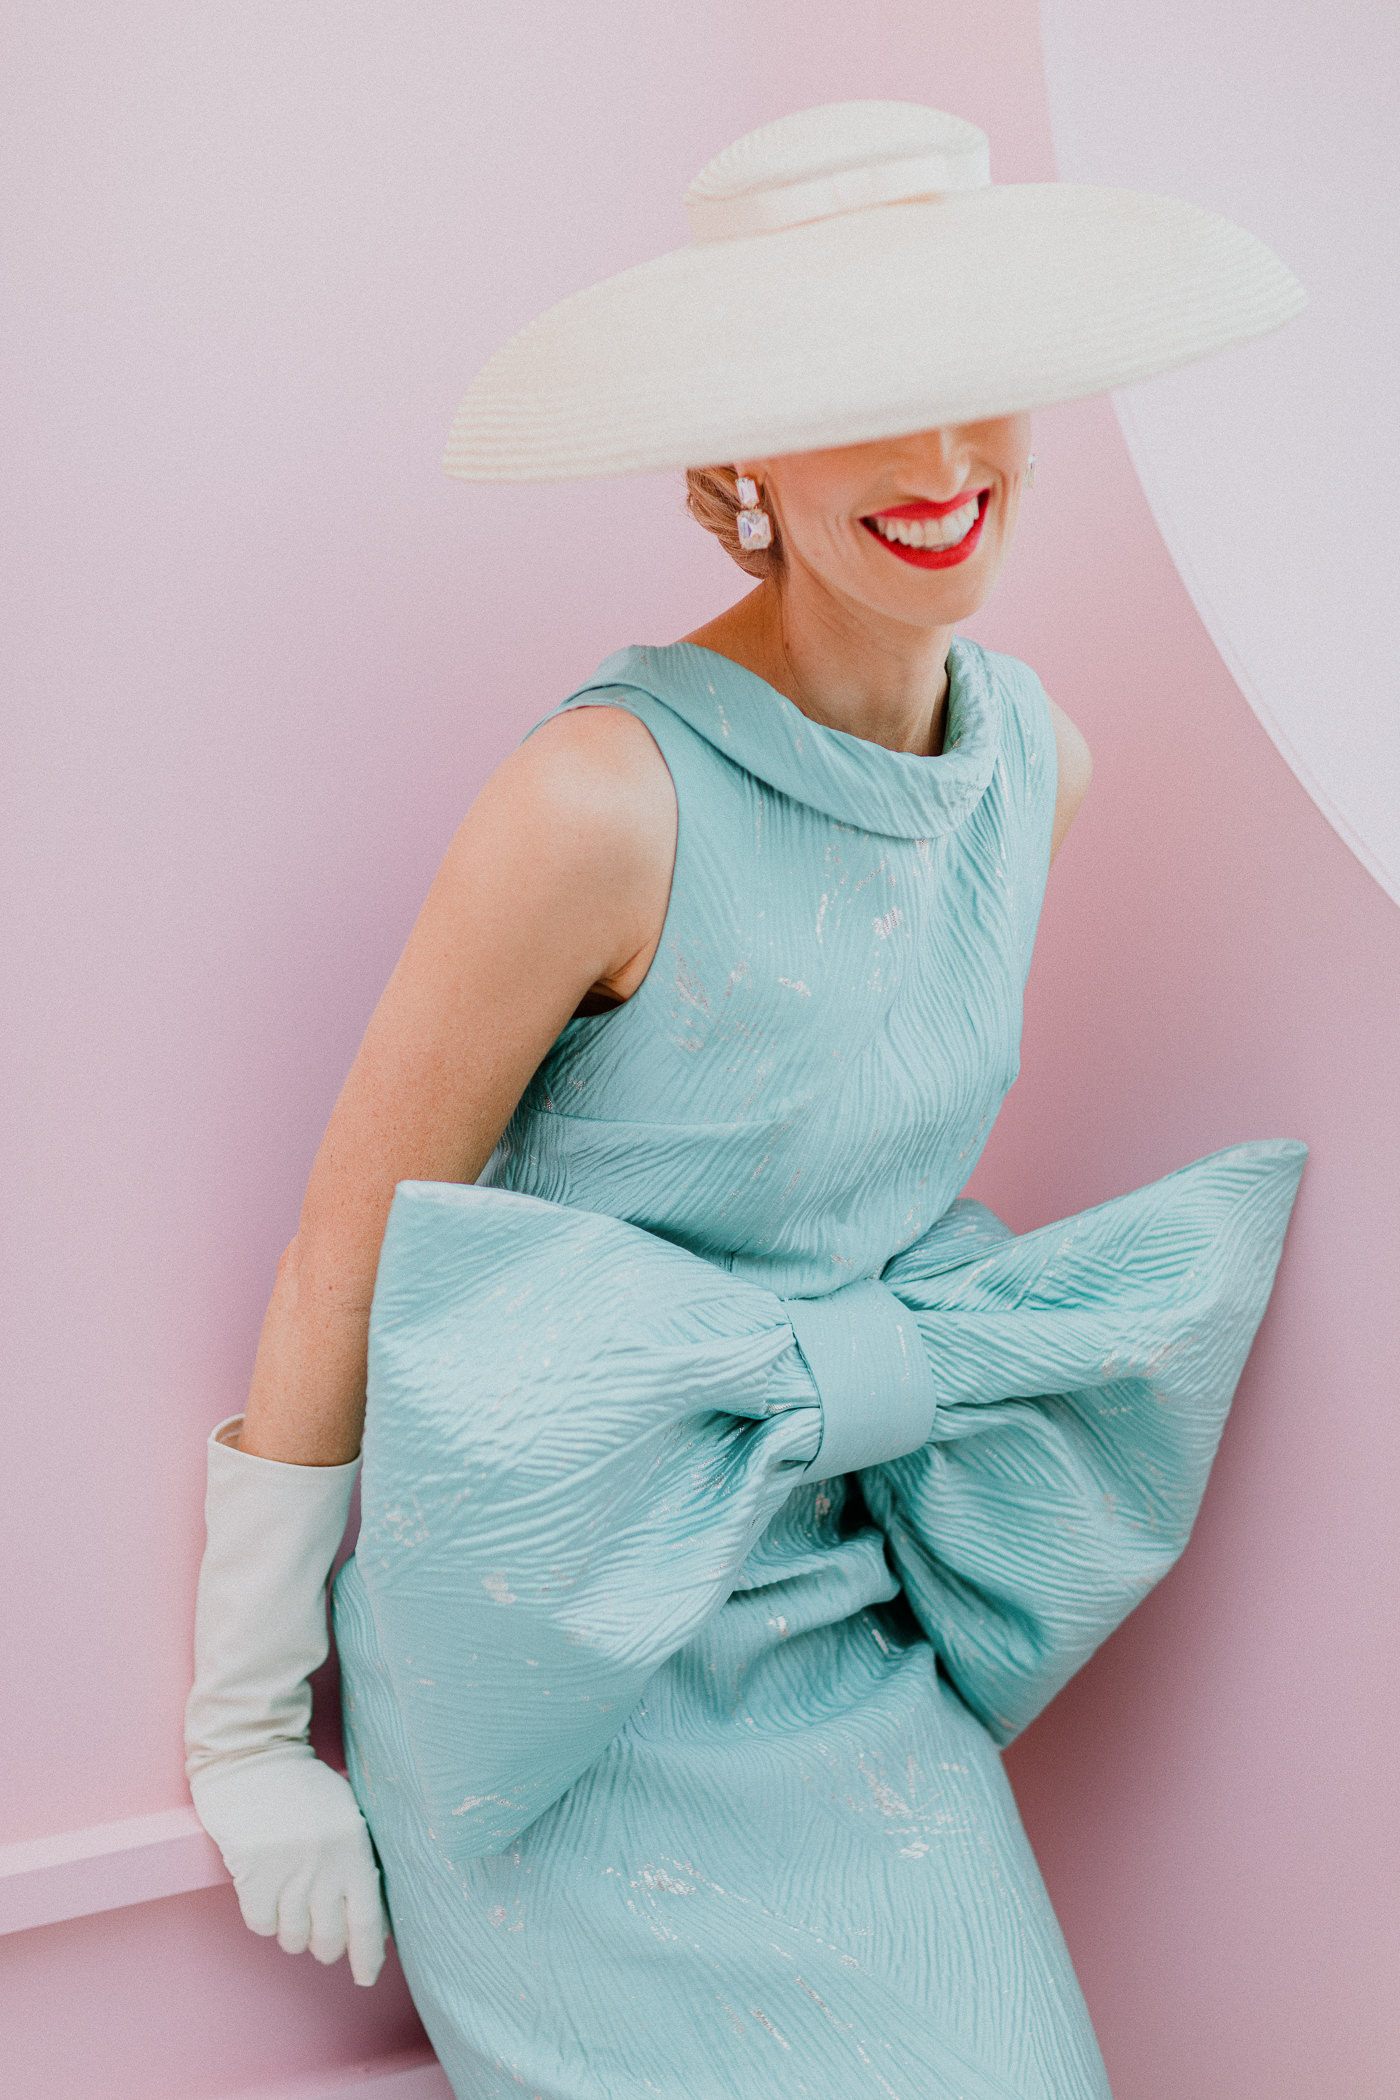 spring racing fashion trends 2020 in Melbourne